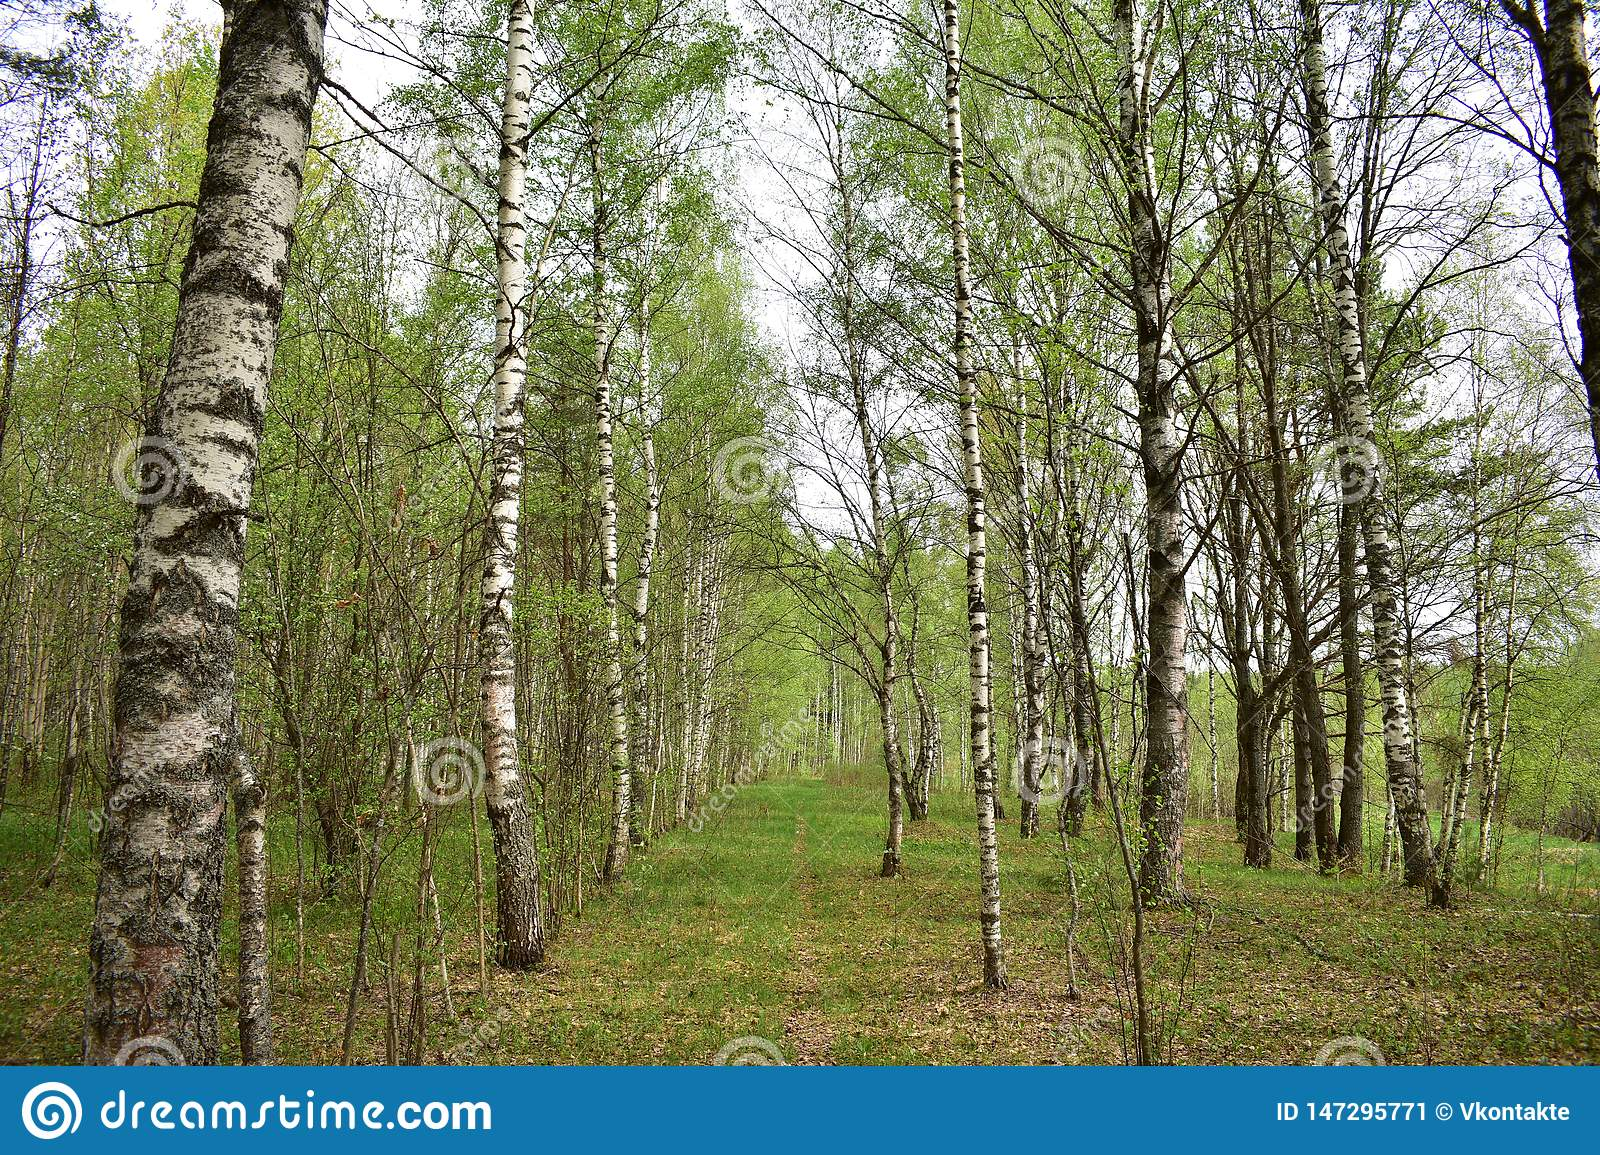 Summer day in the forest is very beautiful neatly arranged on the branches of green leaves